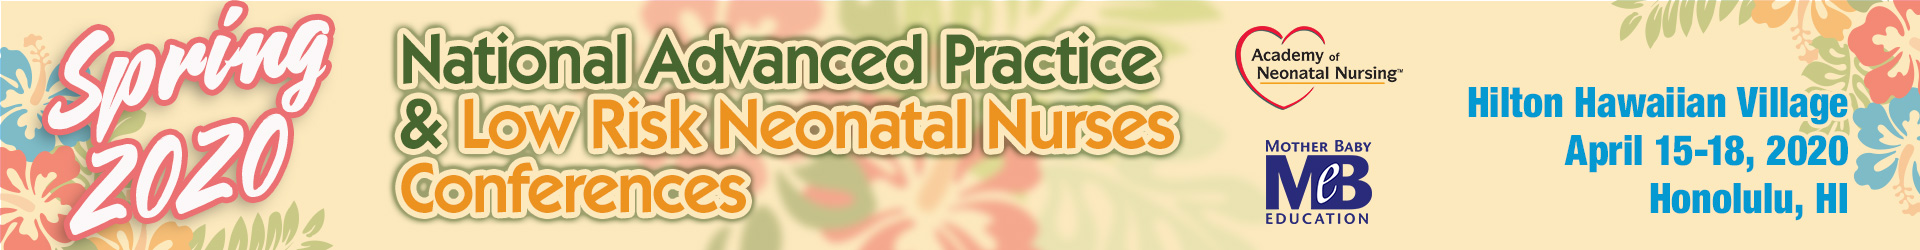 2020 Spring National Advanced Practice Neonatal Nurses Conference Event Banner